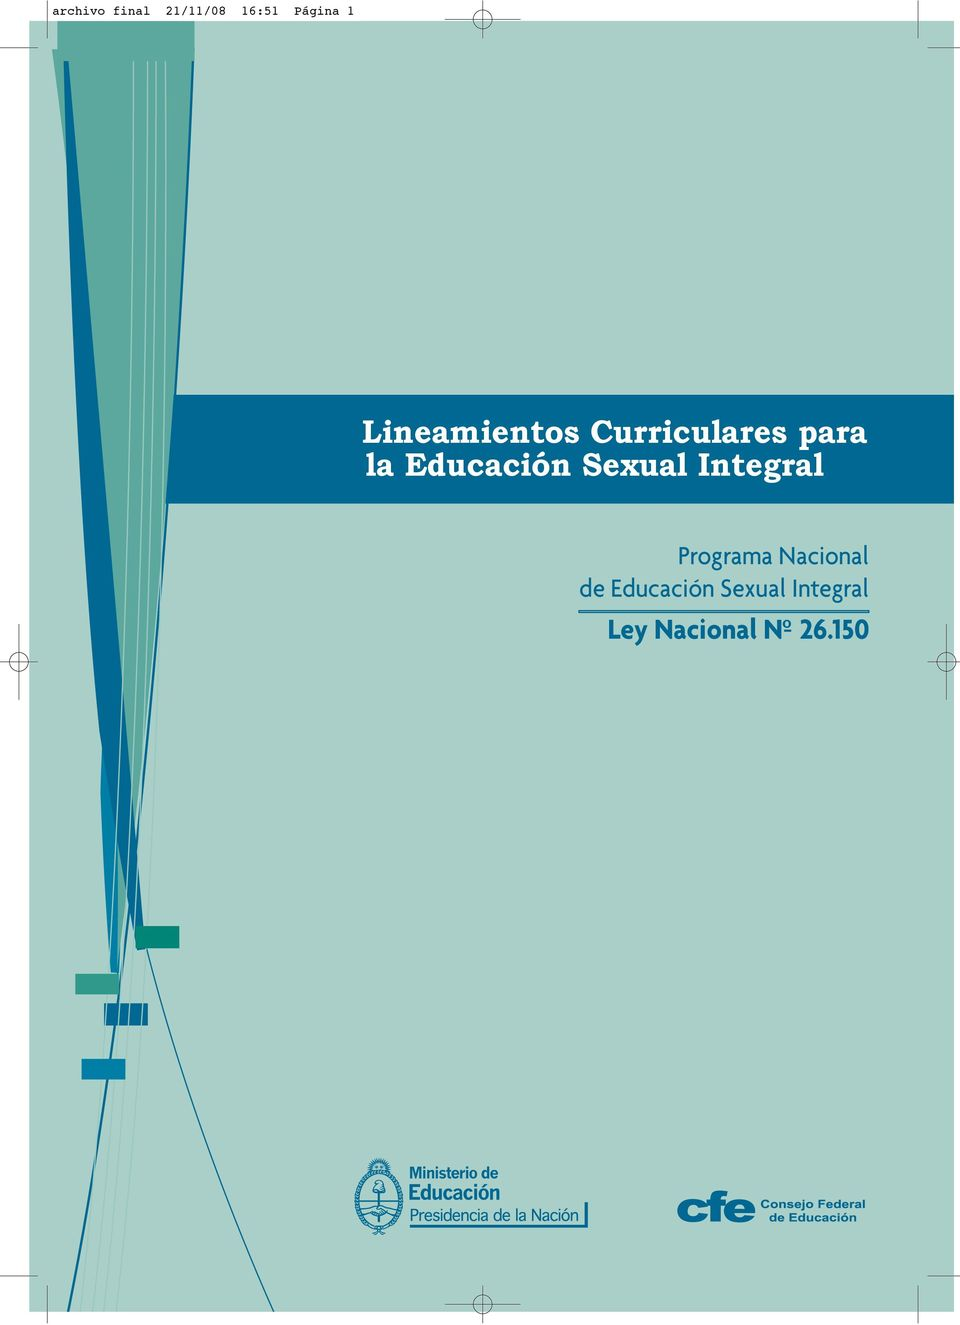 Educación Sexual Integral Programa